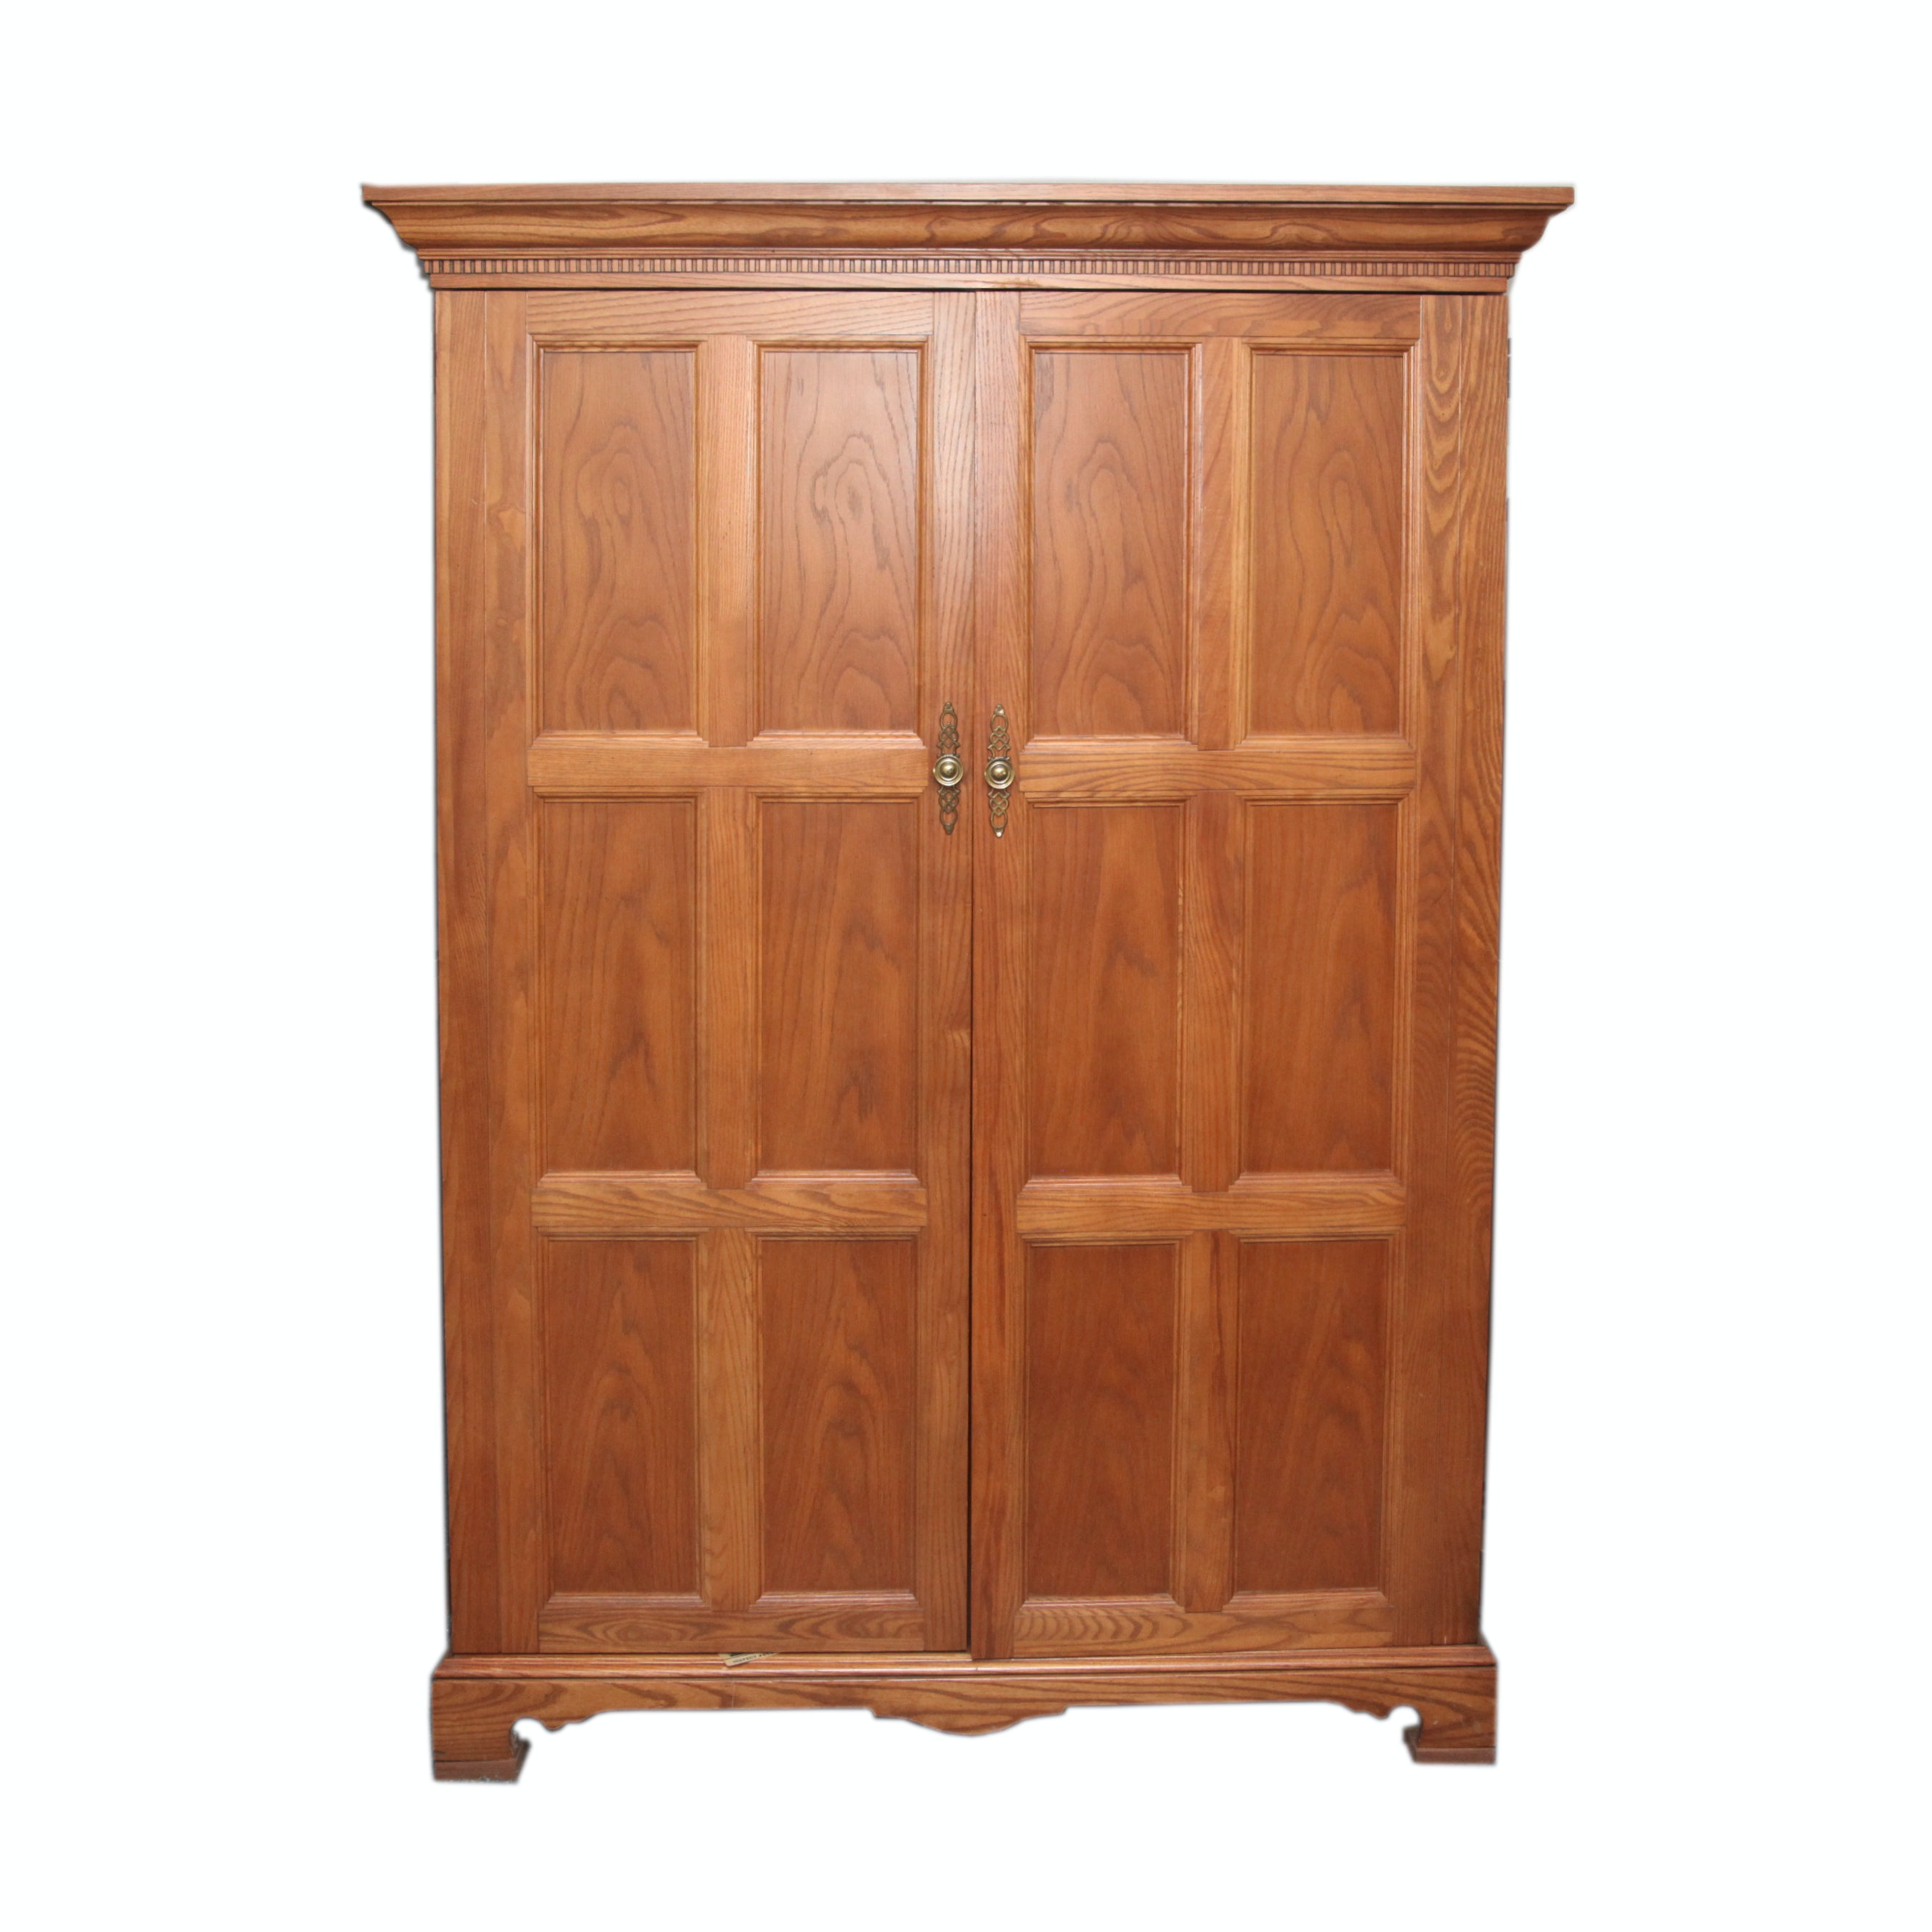 Oak Desk Armoire or Crafting Cabinet